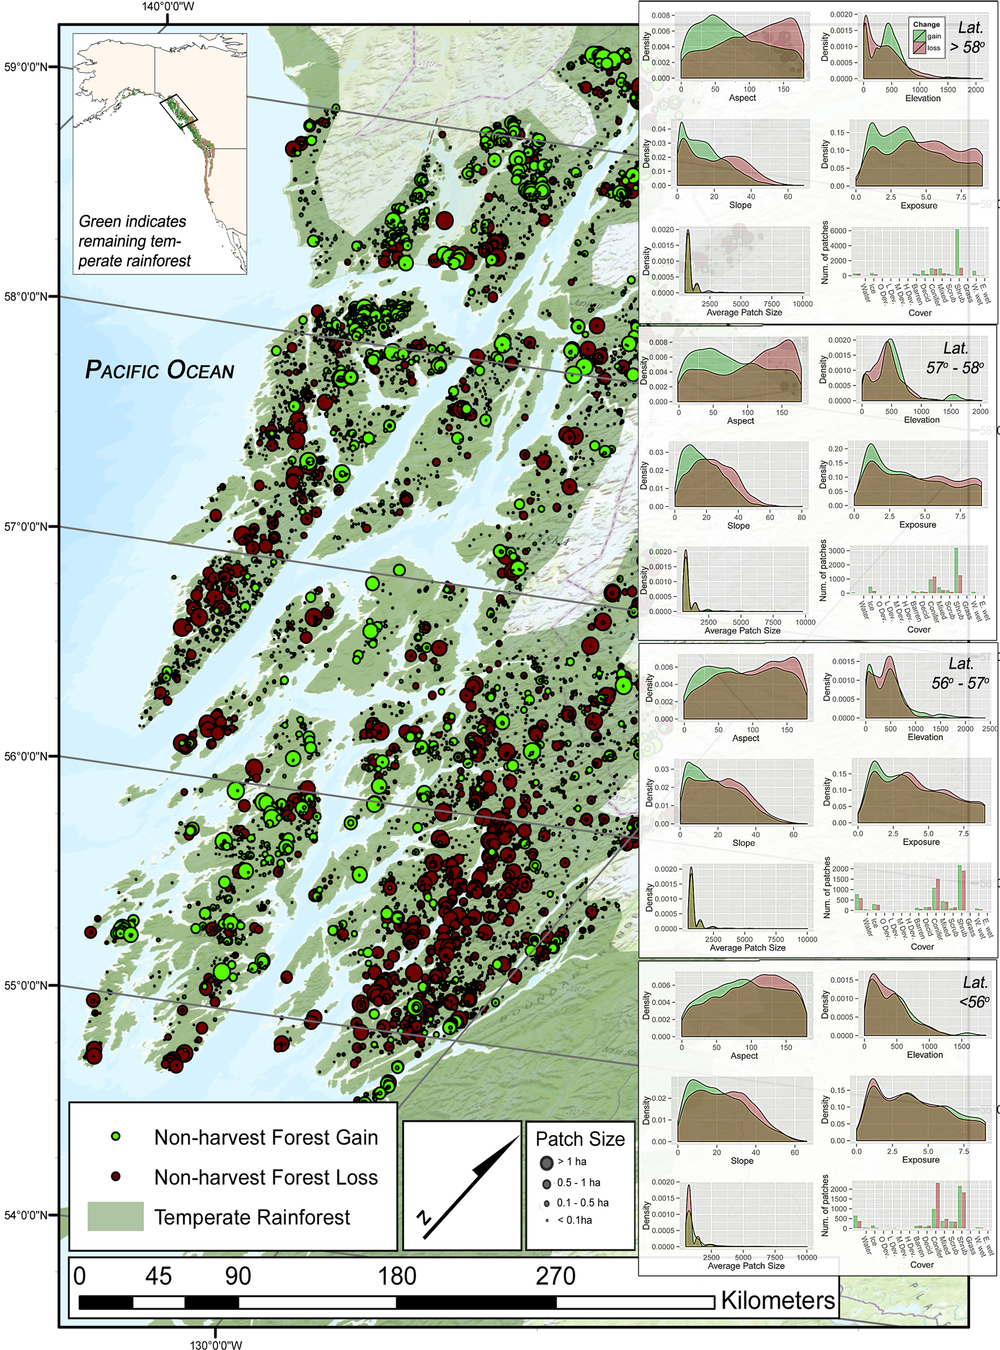 Distribution of forest disturbances across southeast Alaska (anthropogenic disturbances removed) and a comparative distribution of their spatio-topographic contexts at a latitudinal scale.  The analysis is conducted at the 30m scale. From Buma and Barrett 2015.